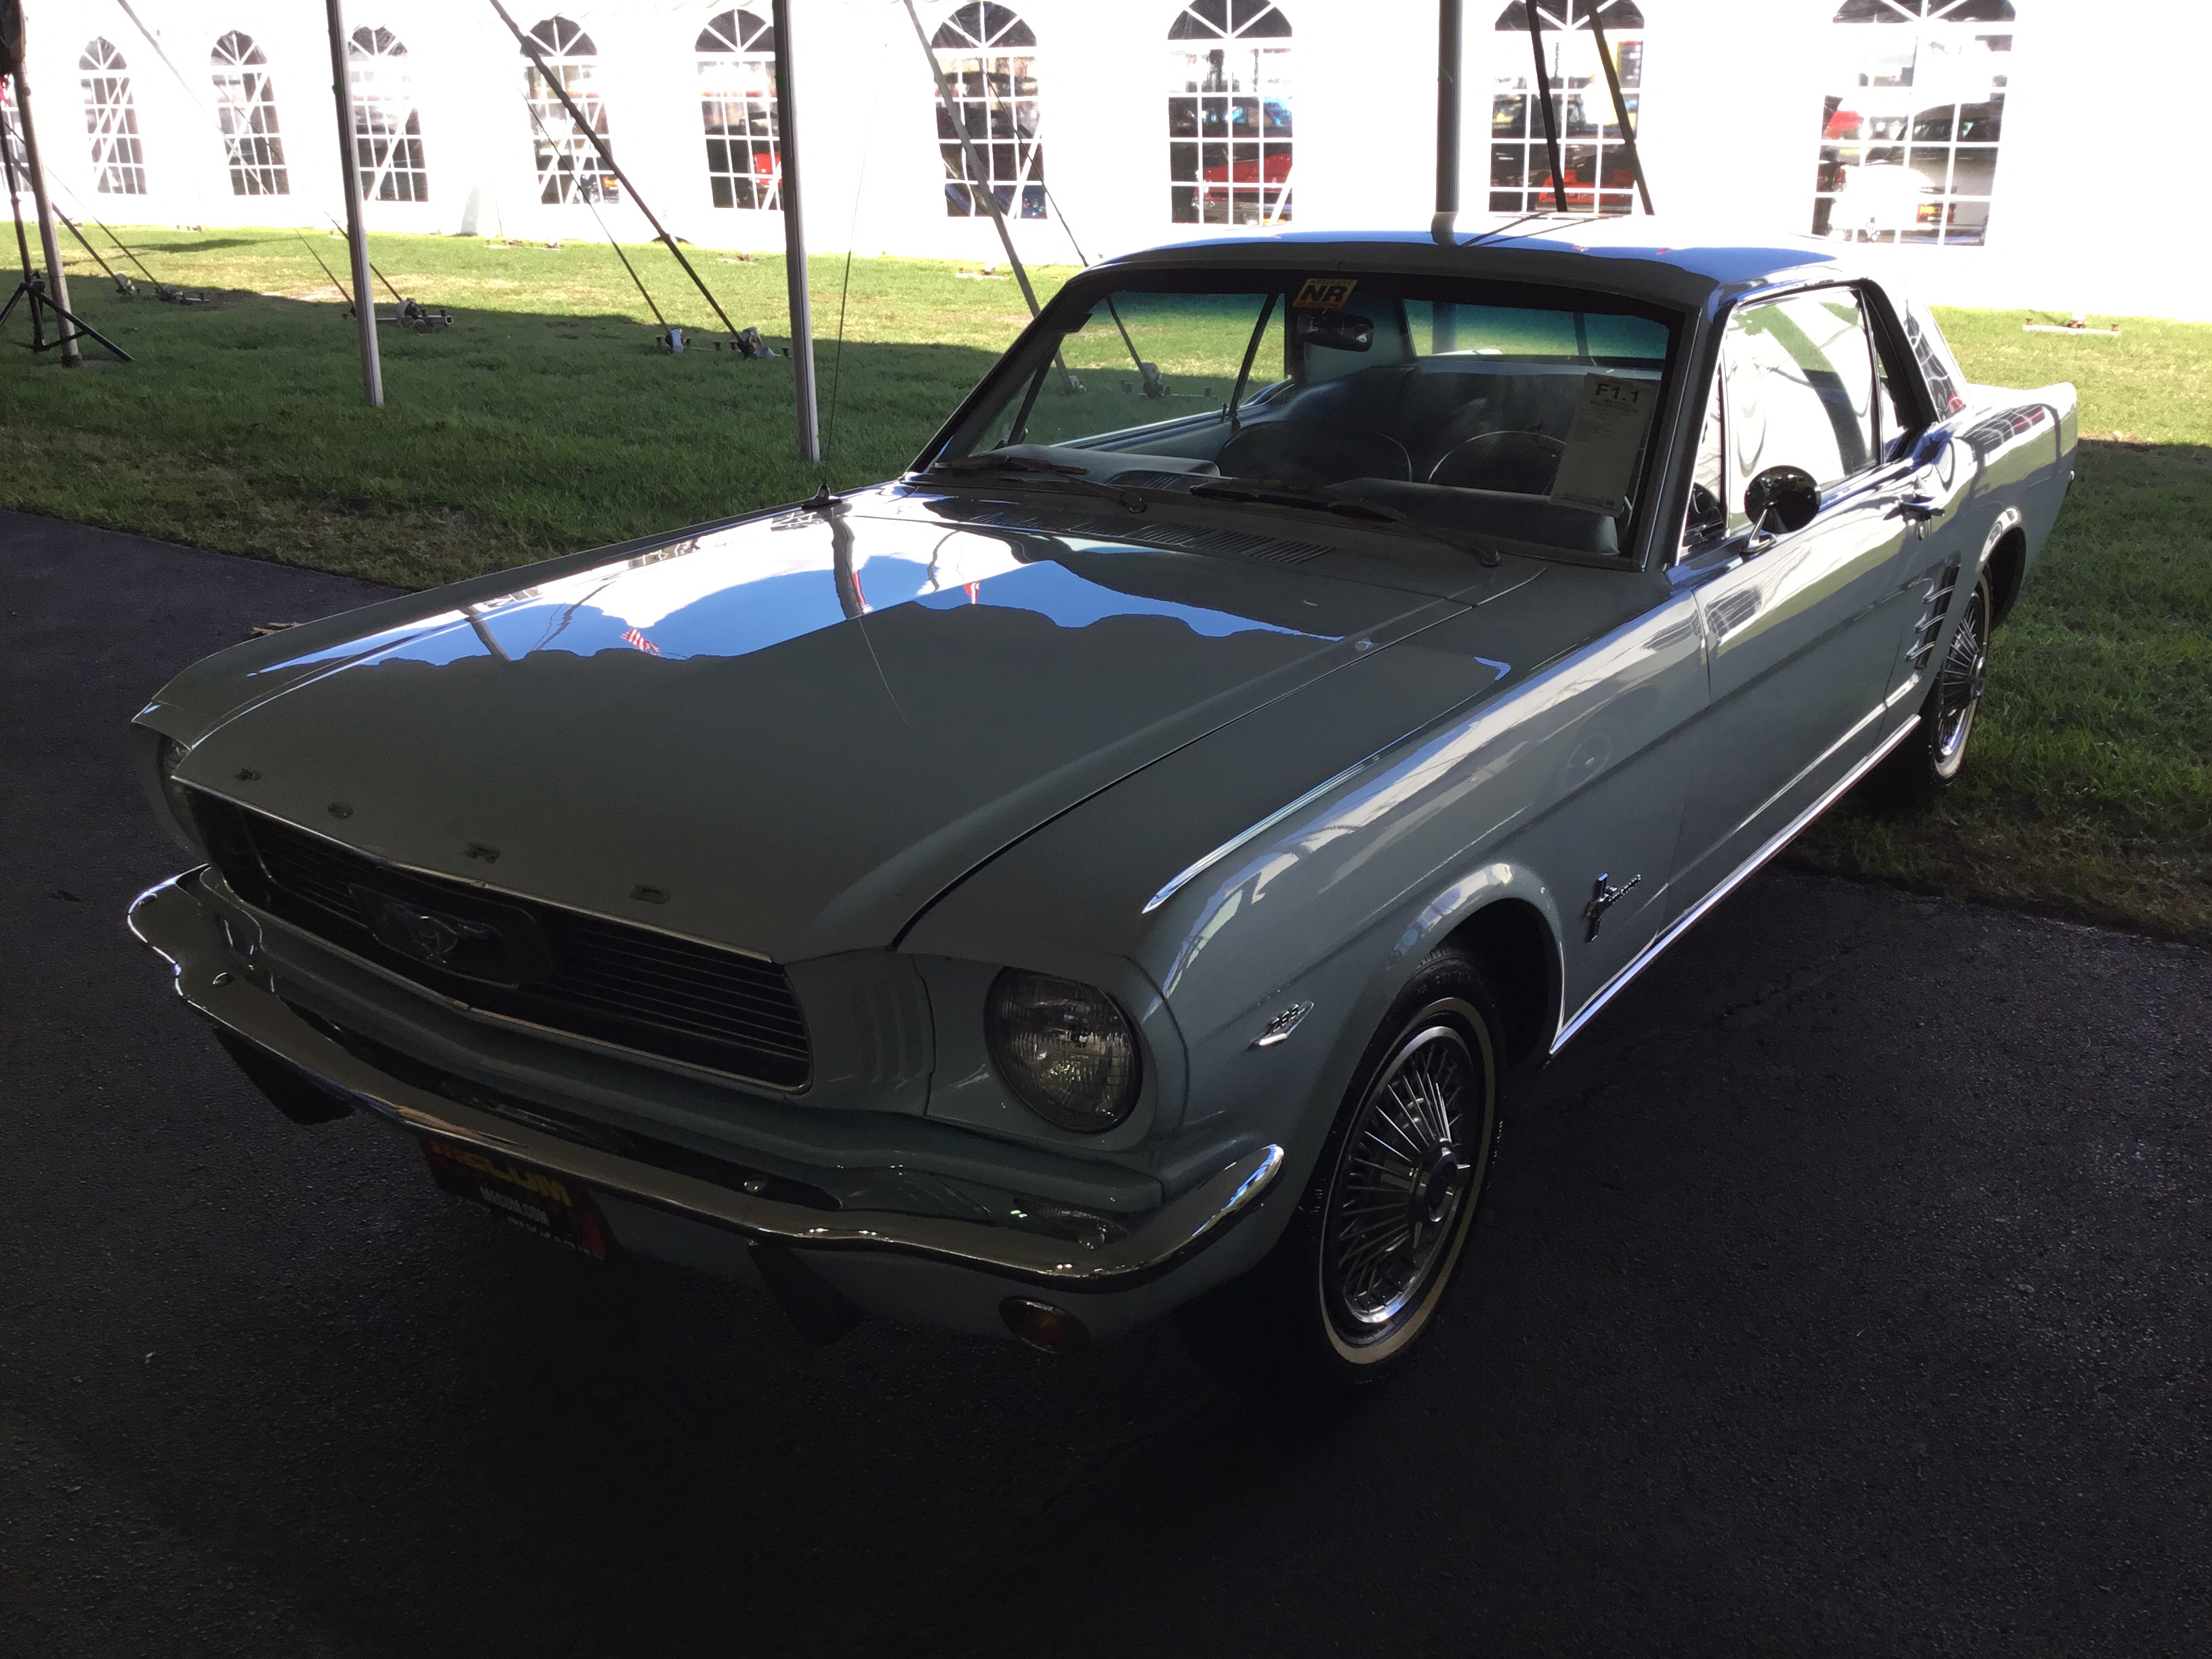 1966 ford mustang coupe v8 289 200 1x2 bbl